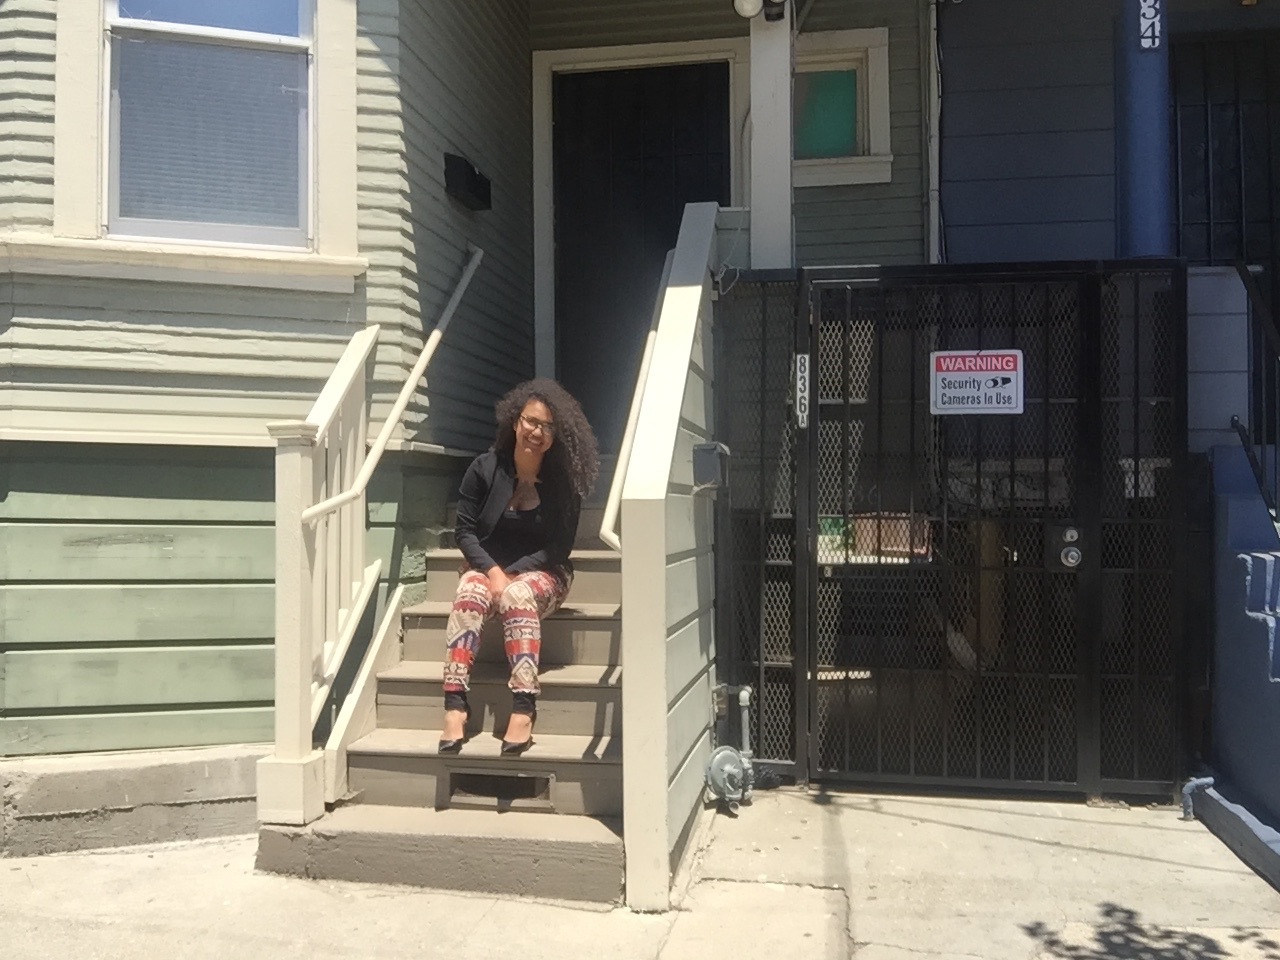 9-year-old Elizabethe Matute shares this West Oakland apartment with five other people, paying nearly 80 percent of her income in rent.